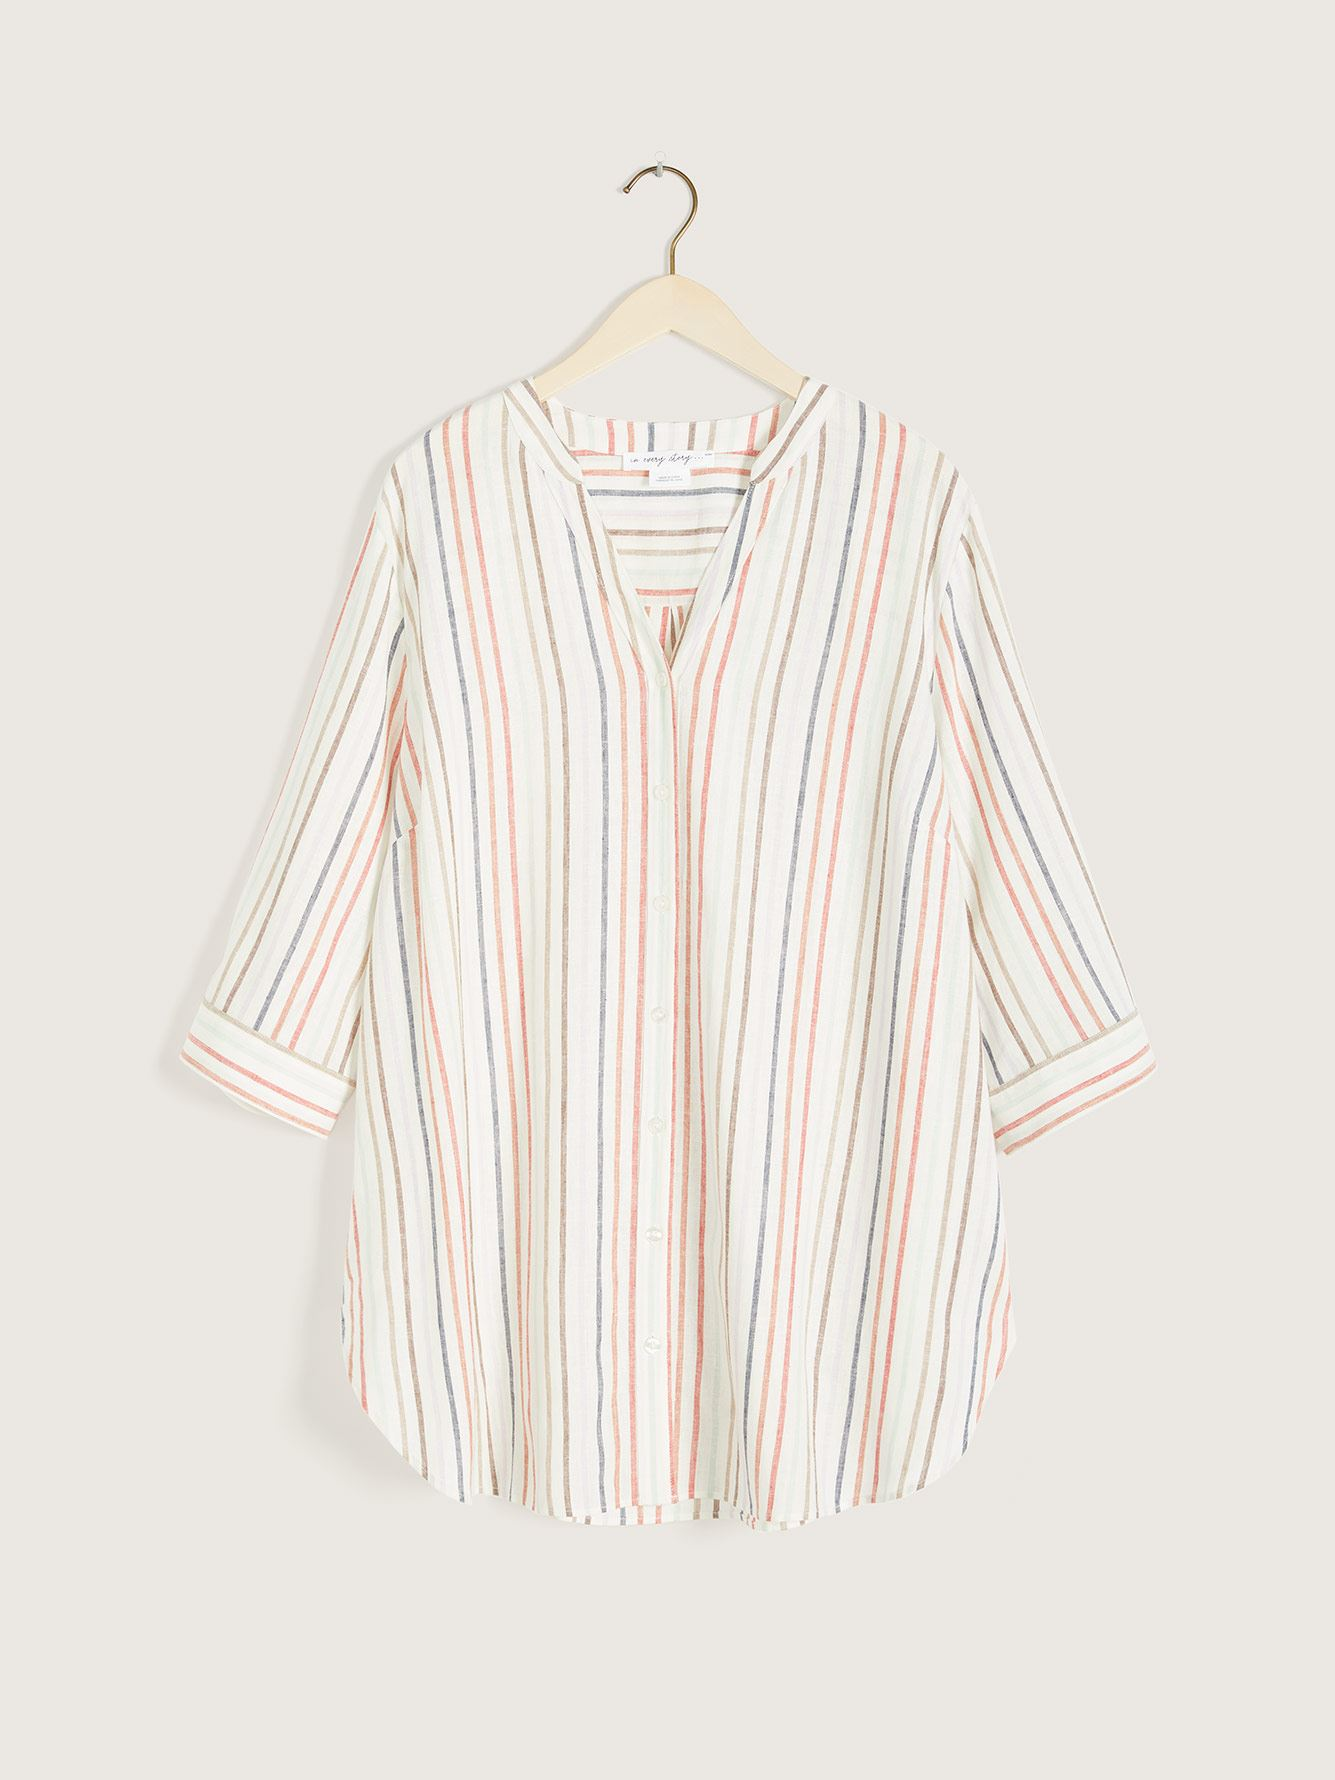 Striped Button-Down 3/4 Sleeve Blouse - In Every Story 2